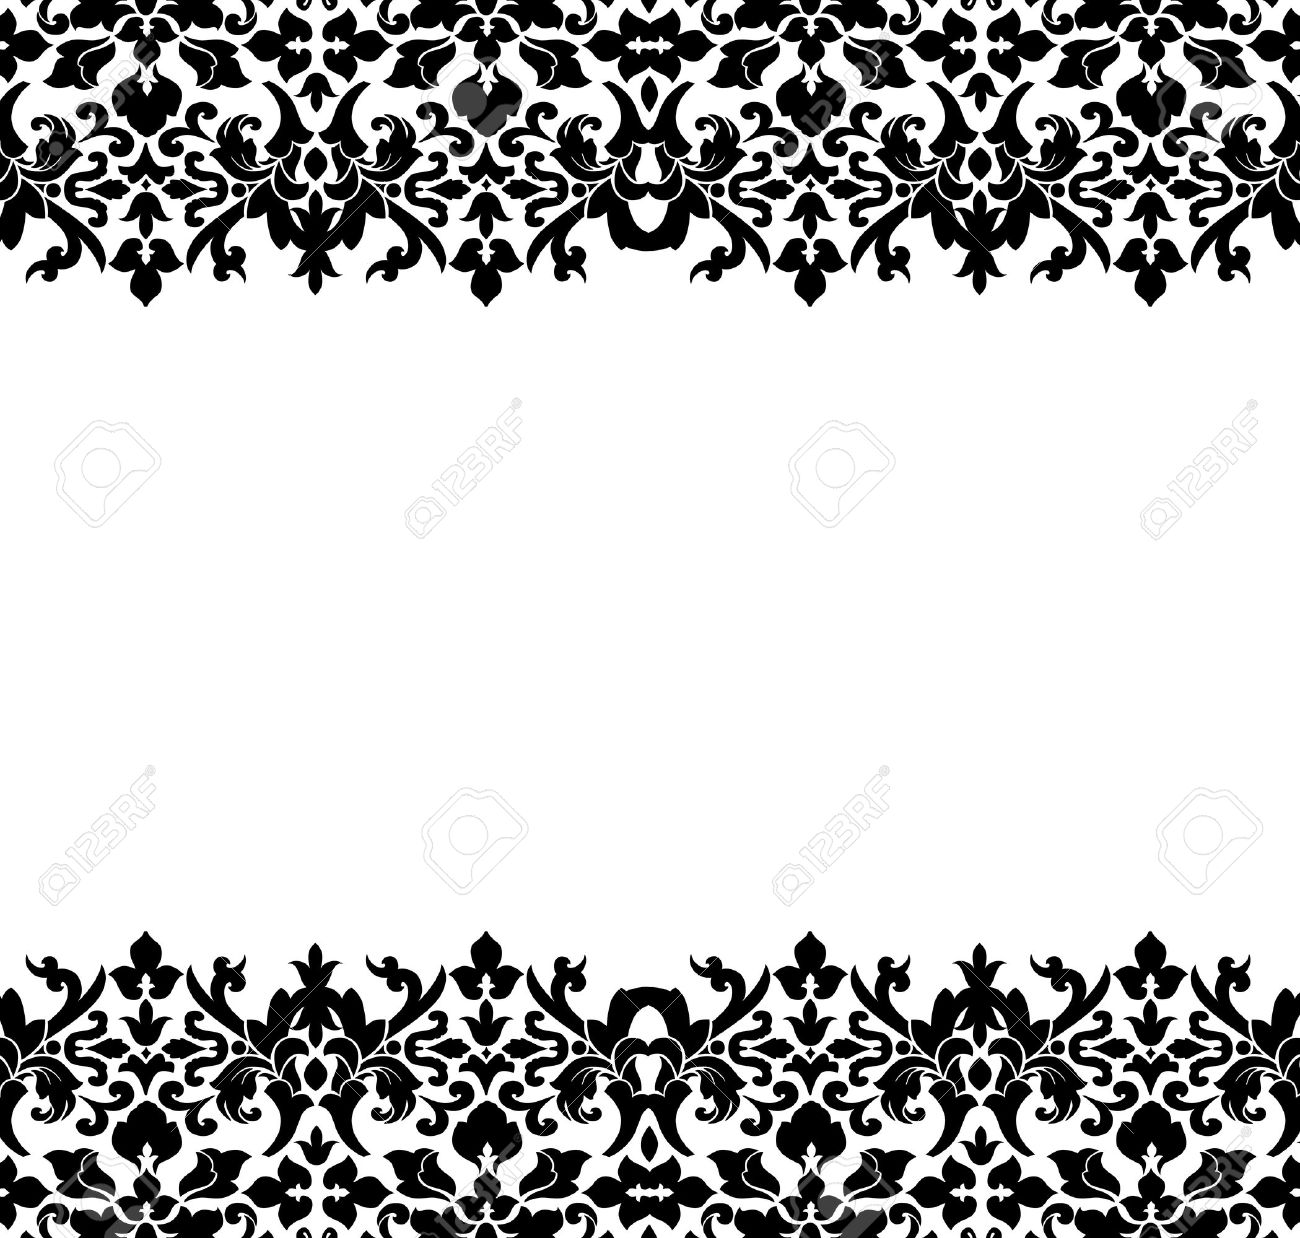 Border Or Frame Of Black Damask Stock Photo, Picture And Royalty ...